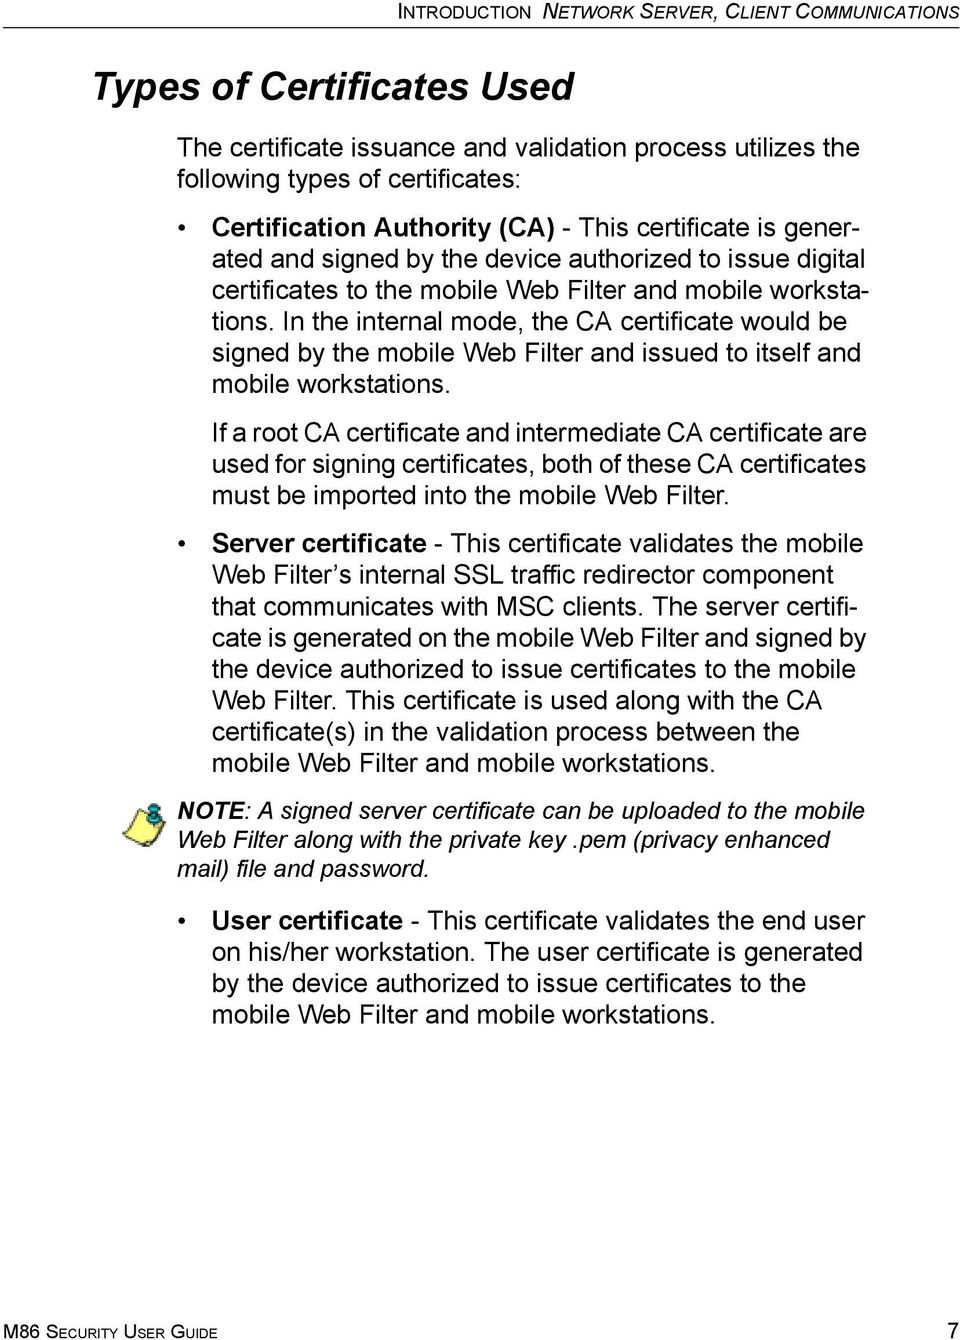 In the internal mode, the CA certificate would be signed by the mobile Web Filter and issued to itself and mobile workstations.